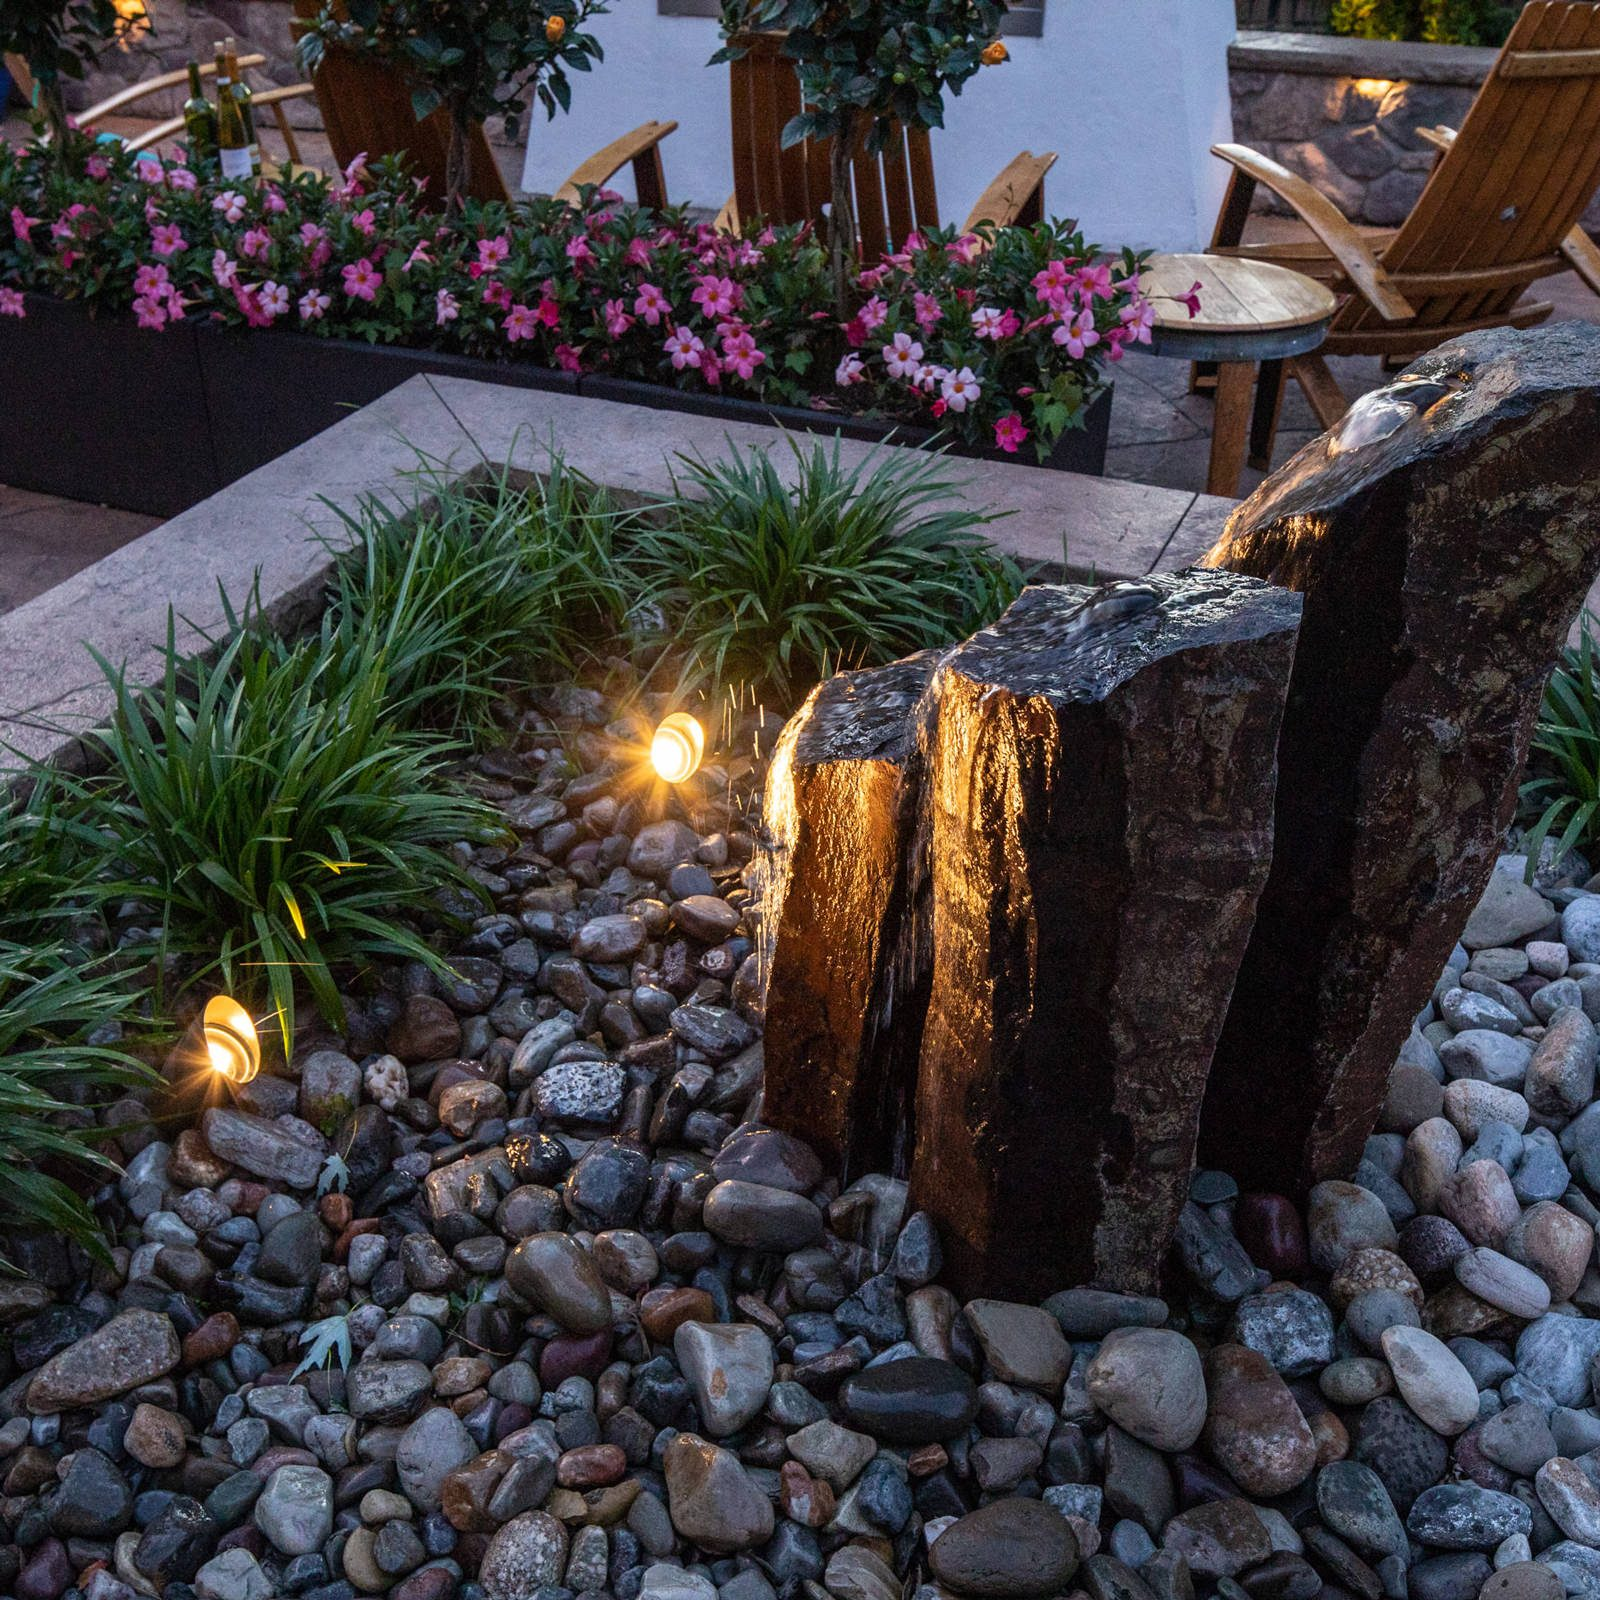 Photography & Video Production of a Beautiful Landscape Design